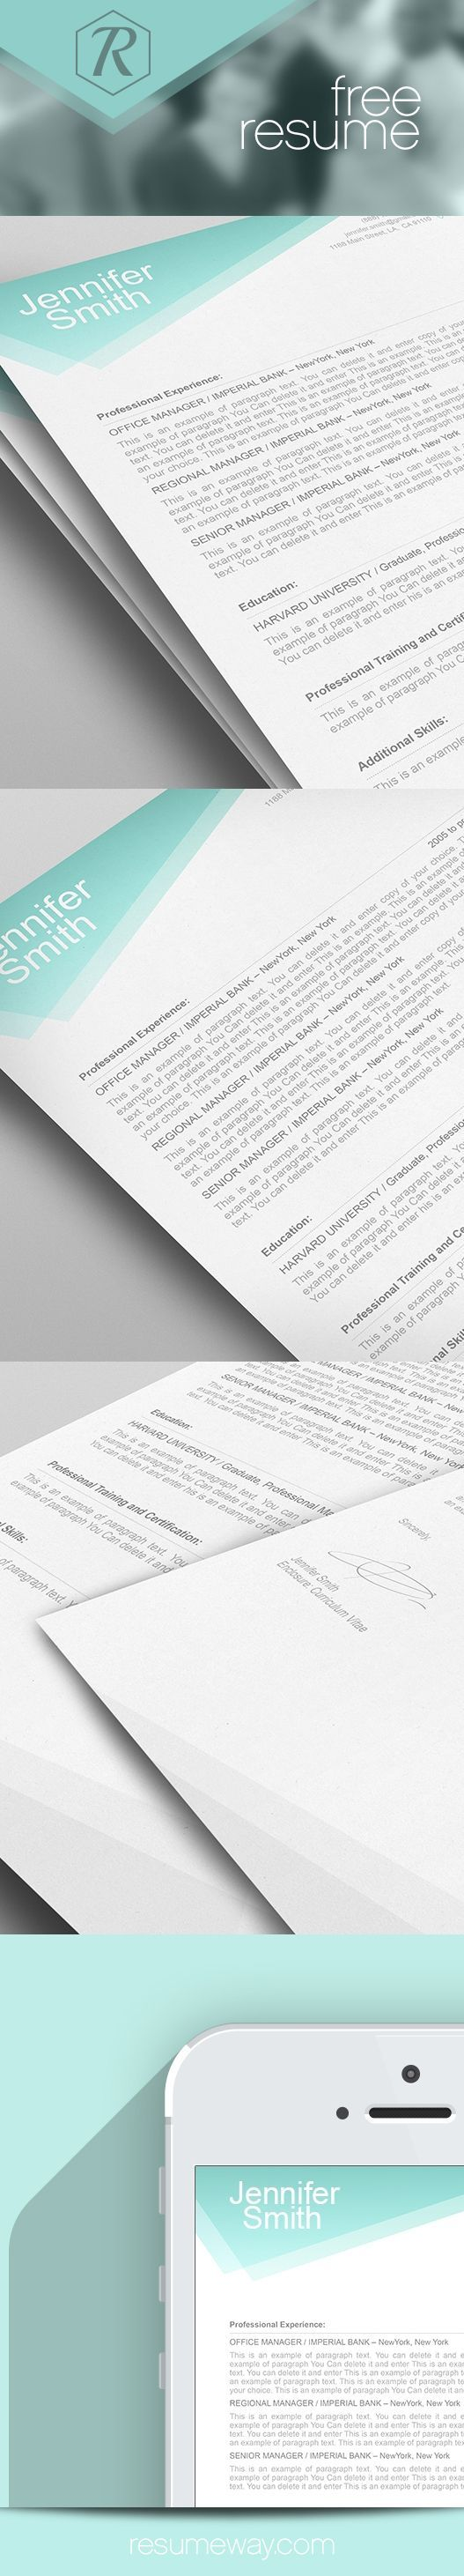 how to do a cover letter with no name%0A FREE Resume Template          Premium line of Resume  u     Cover Letter  Templates  edit with